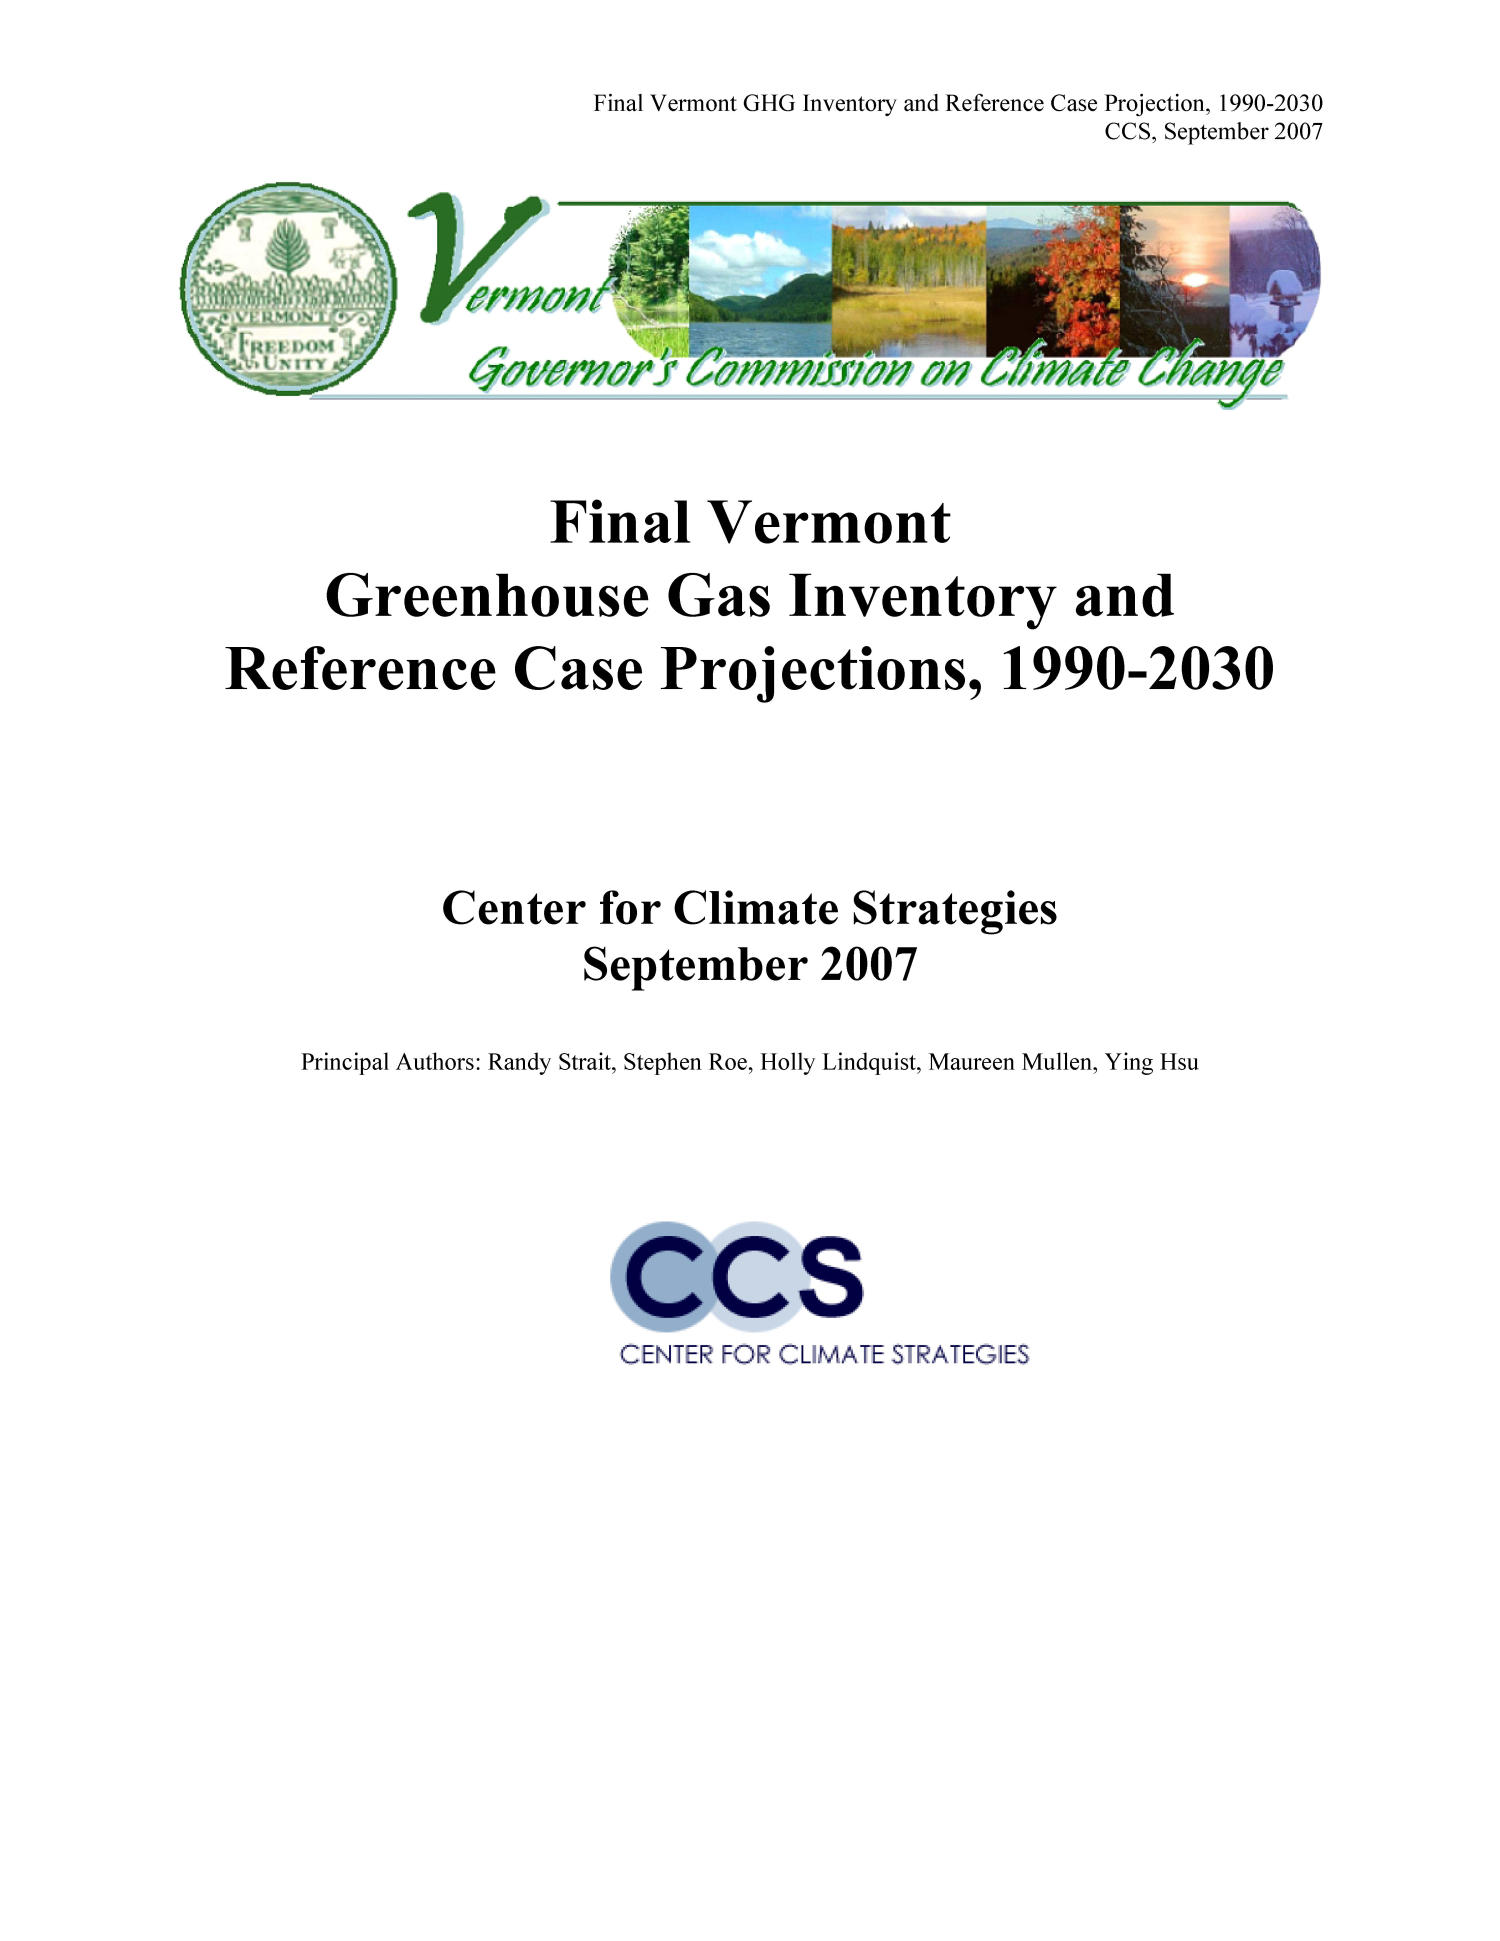 Final Vermont Greenhouse Gas Inventory and Reference Case Projections, 1990-2030                                                                                                      Title Page